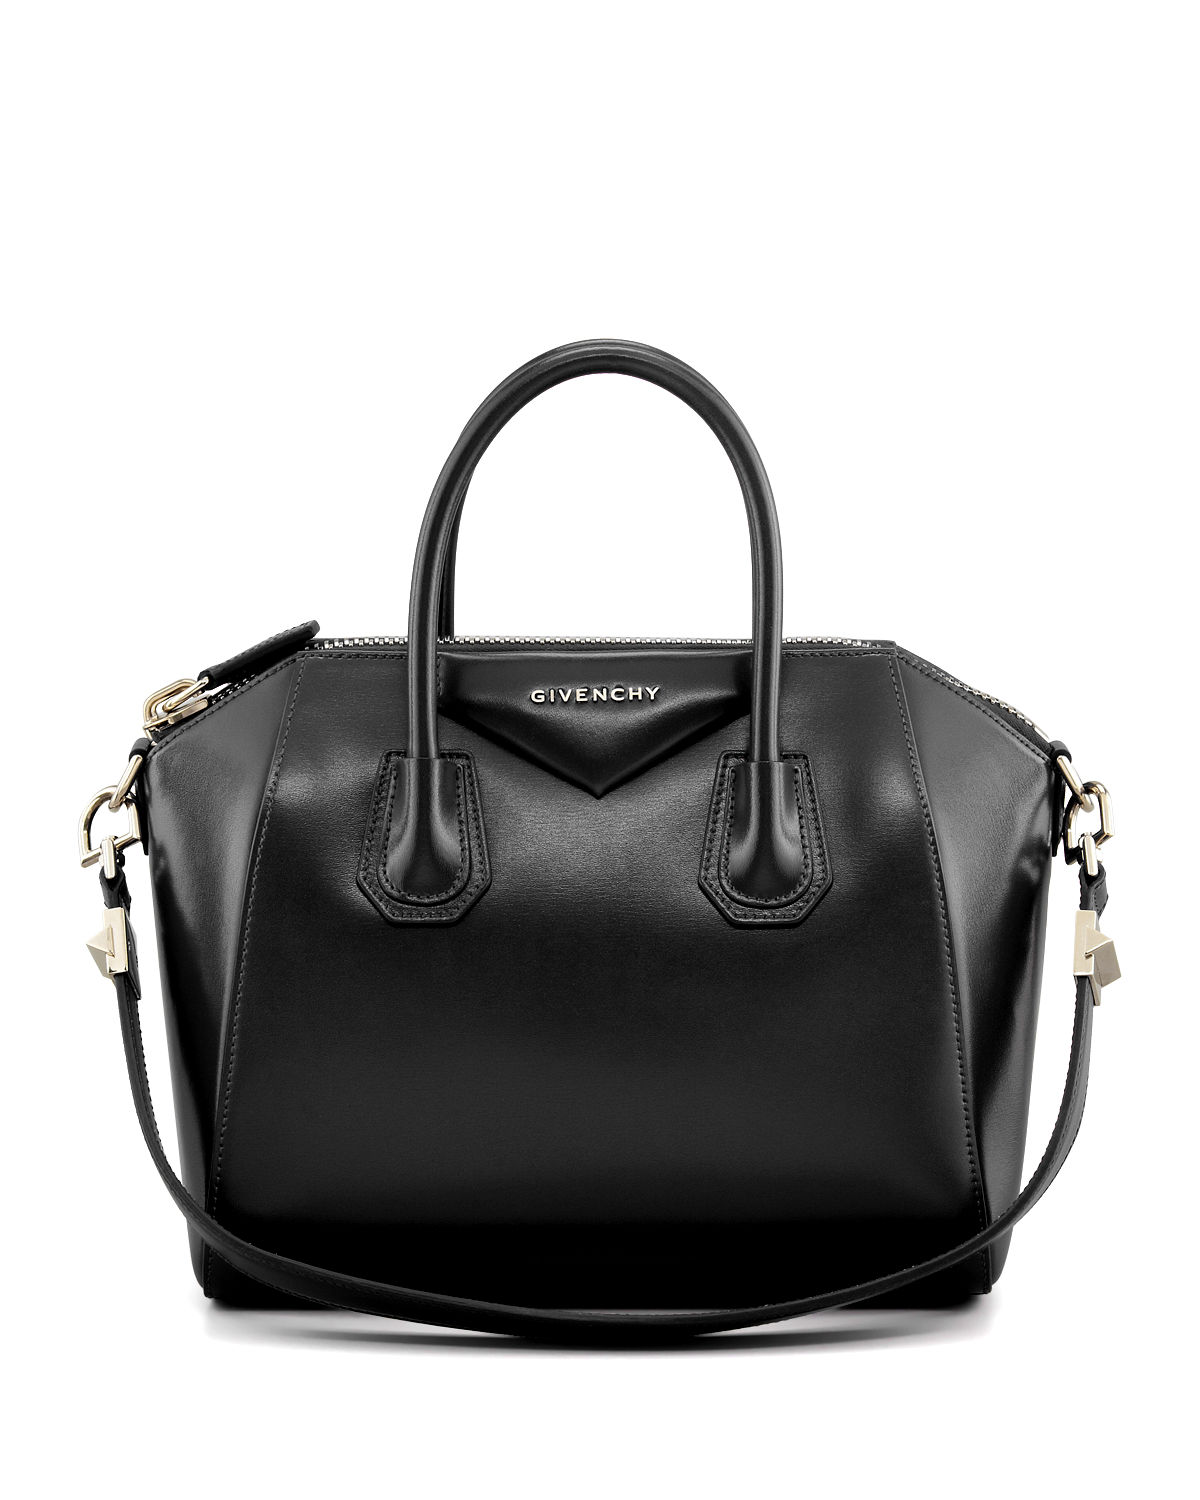 Givenchy Antigona Small Leather Satchel Bag  aa4e6617e4182